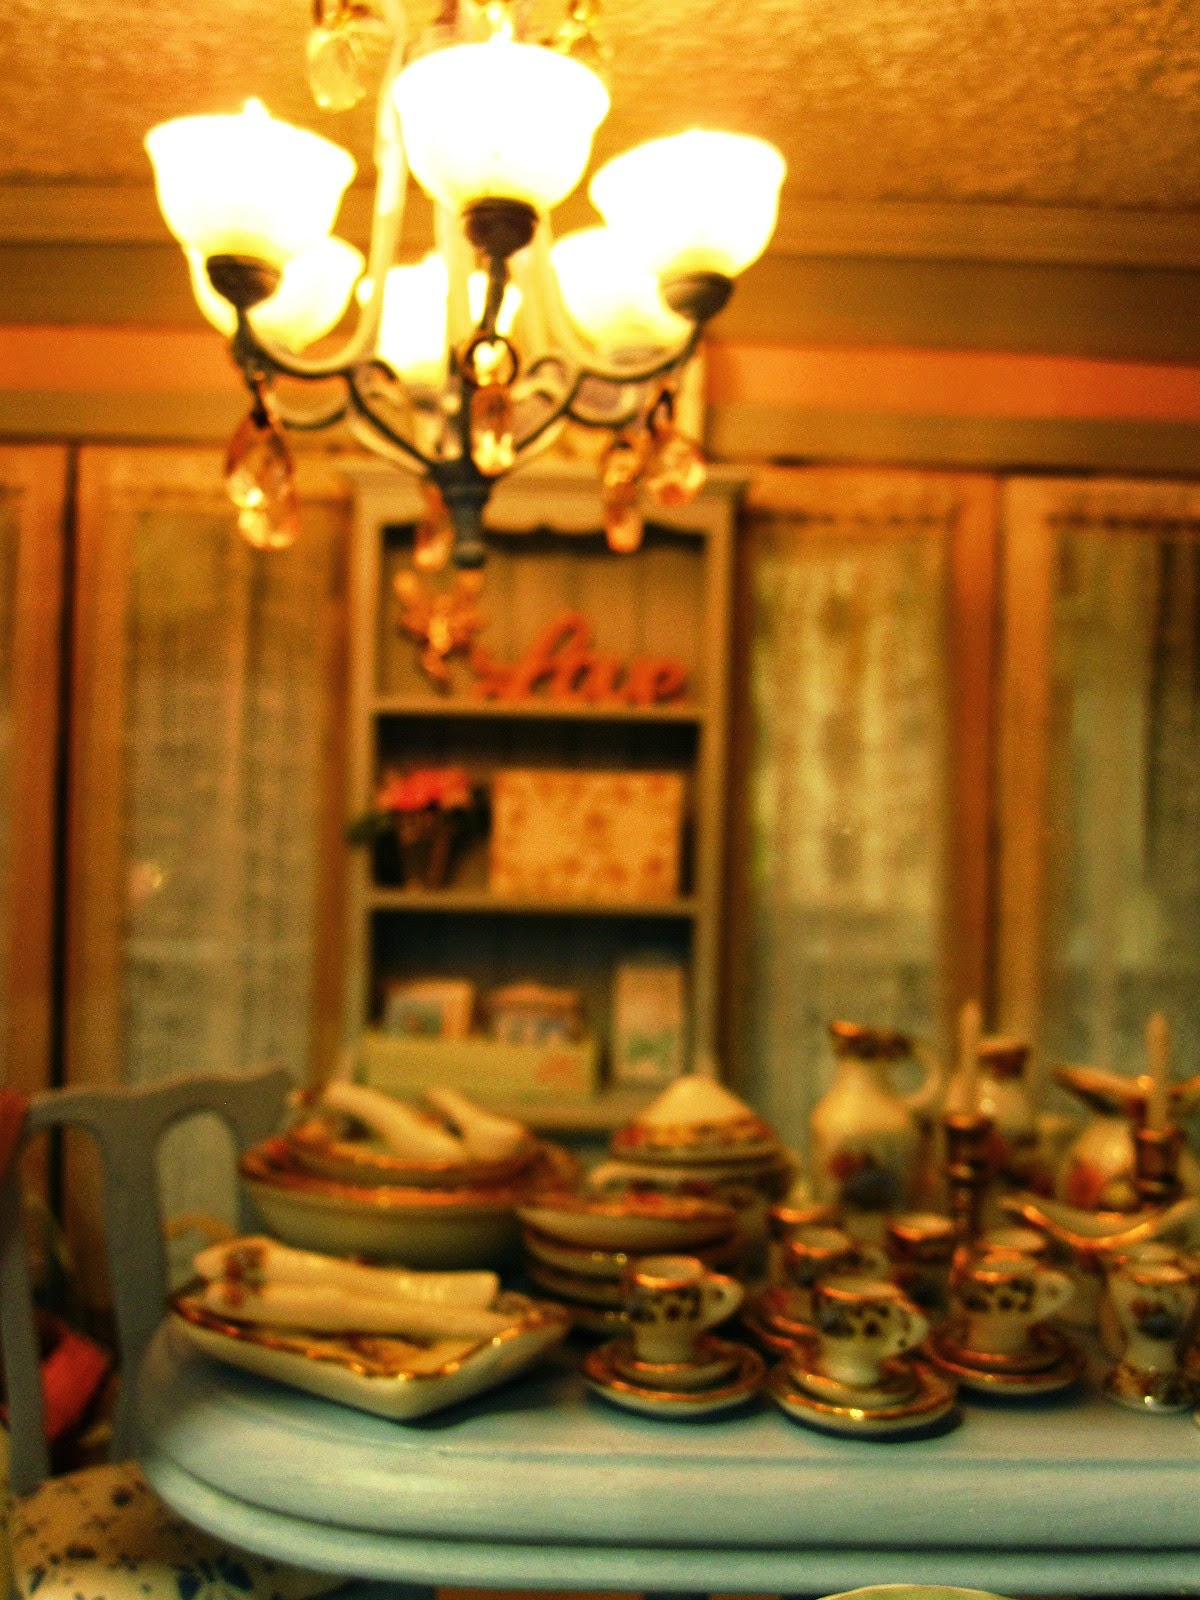 Close-up view of a modern miniature shabby chic shop, showing a dining table displaying a dinner set.